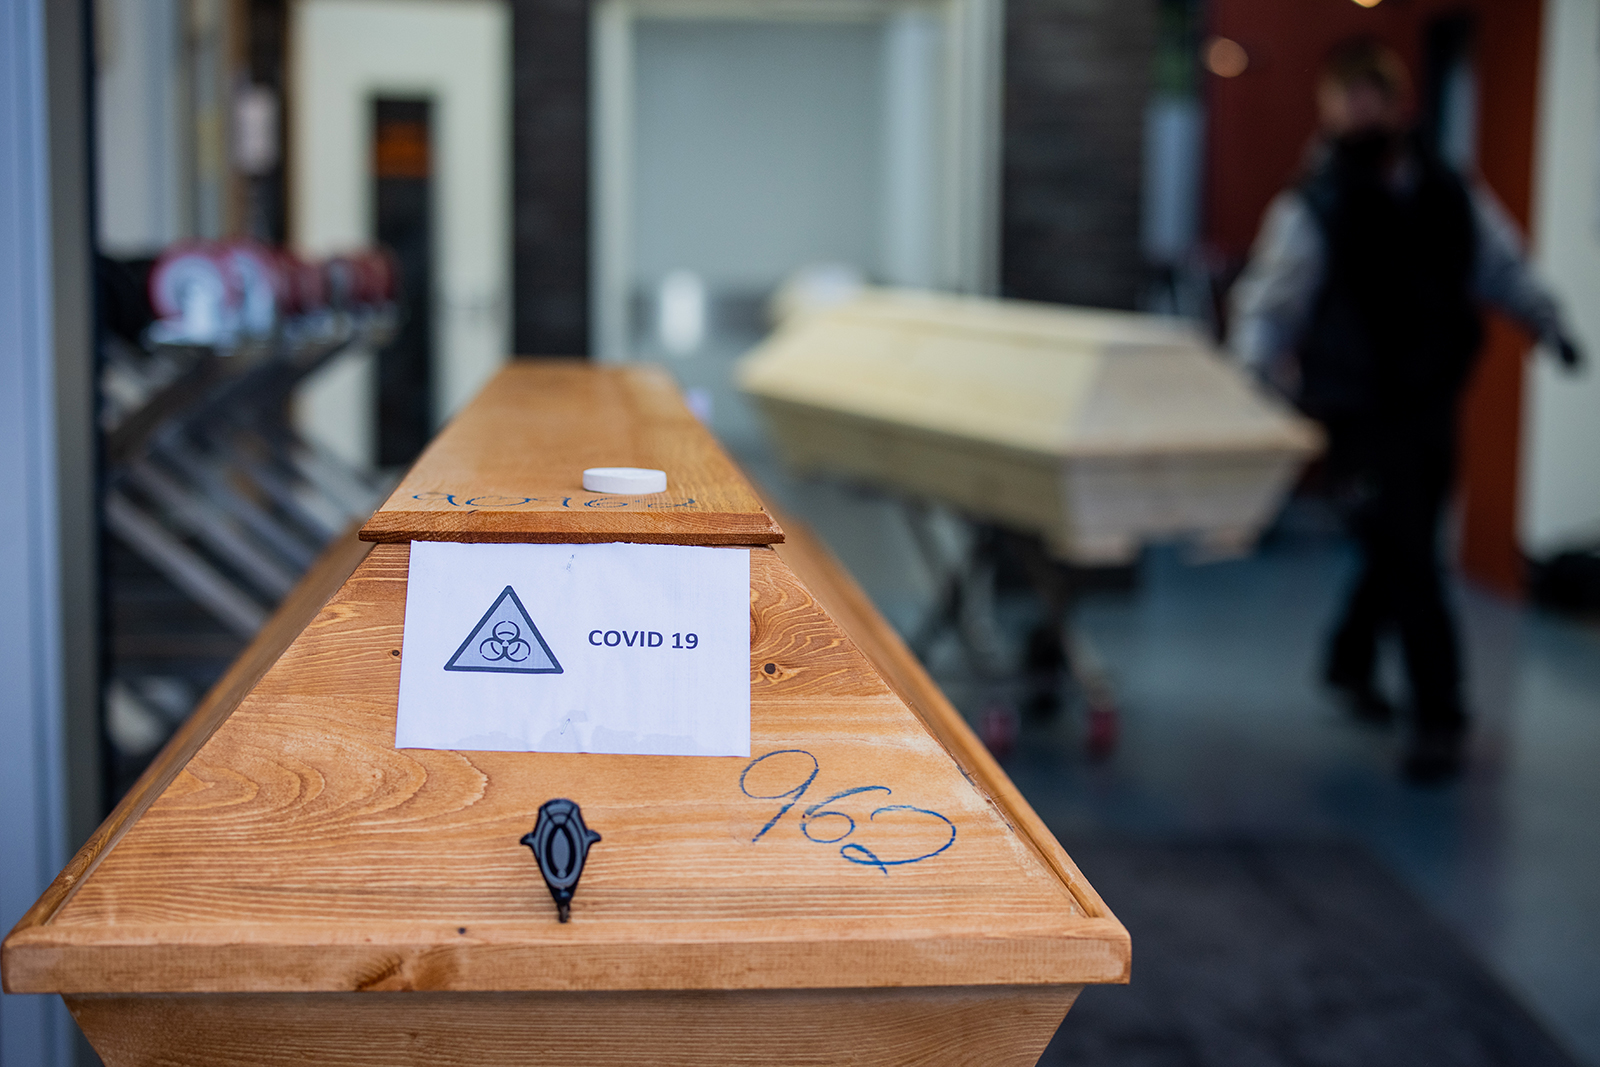 """A coffin labeled """"Biohazard Covid-19"""" is seen at a crematorium in Dülman, Germany, on January 19."""